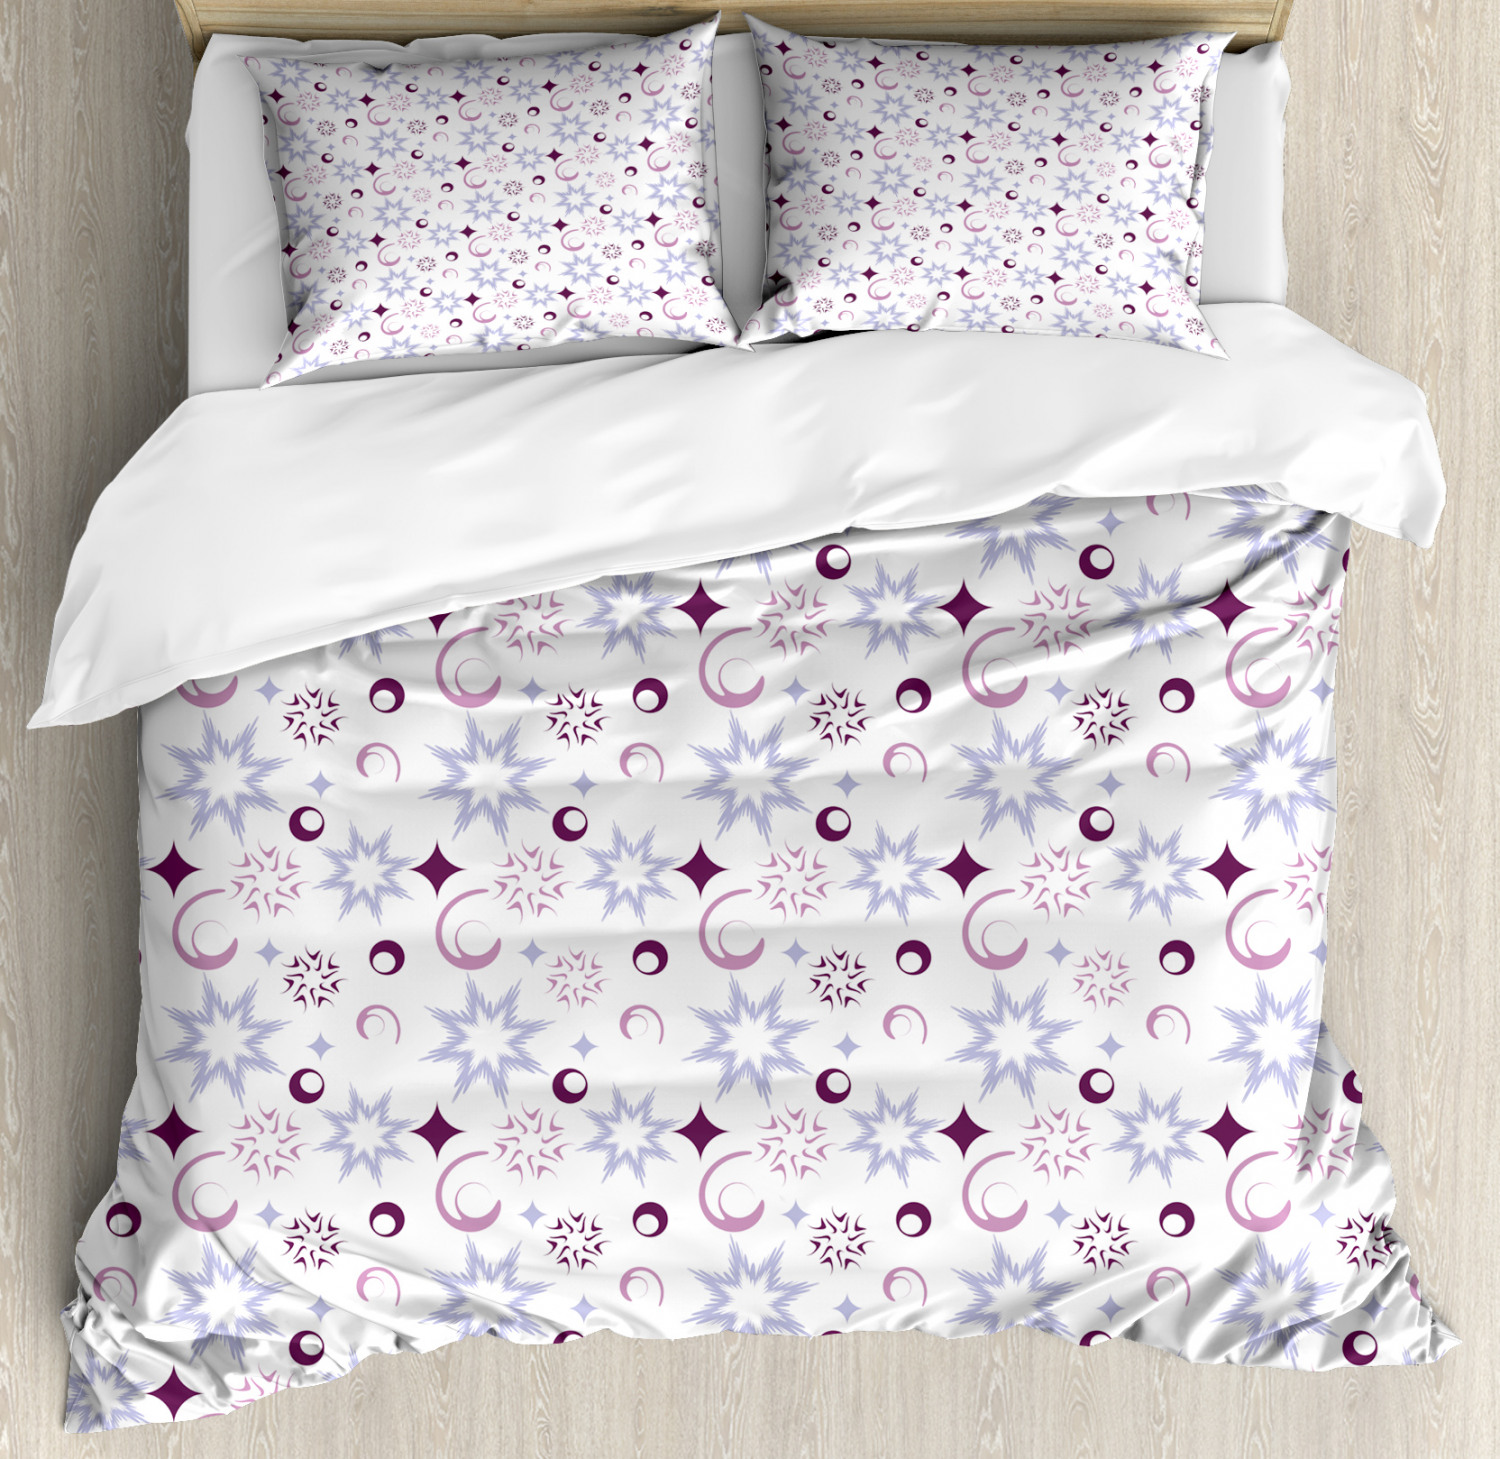 Winter Duvet Cover Set with Pillow Shams Retro Abstract Snowflake Print